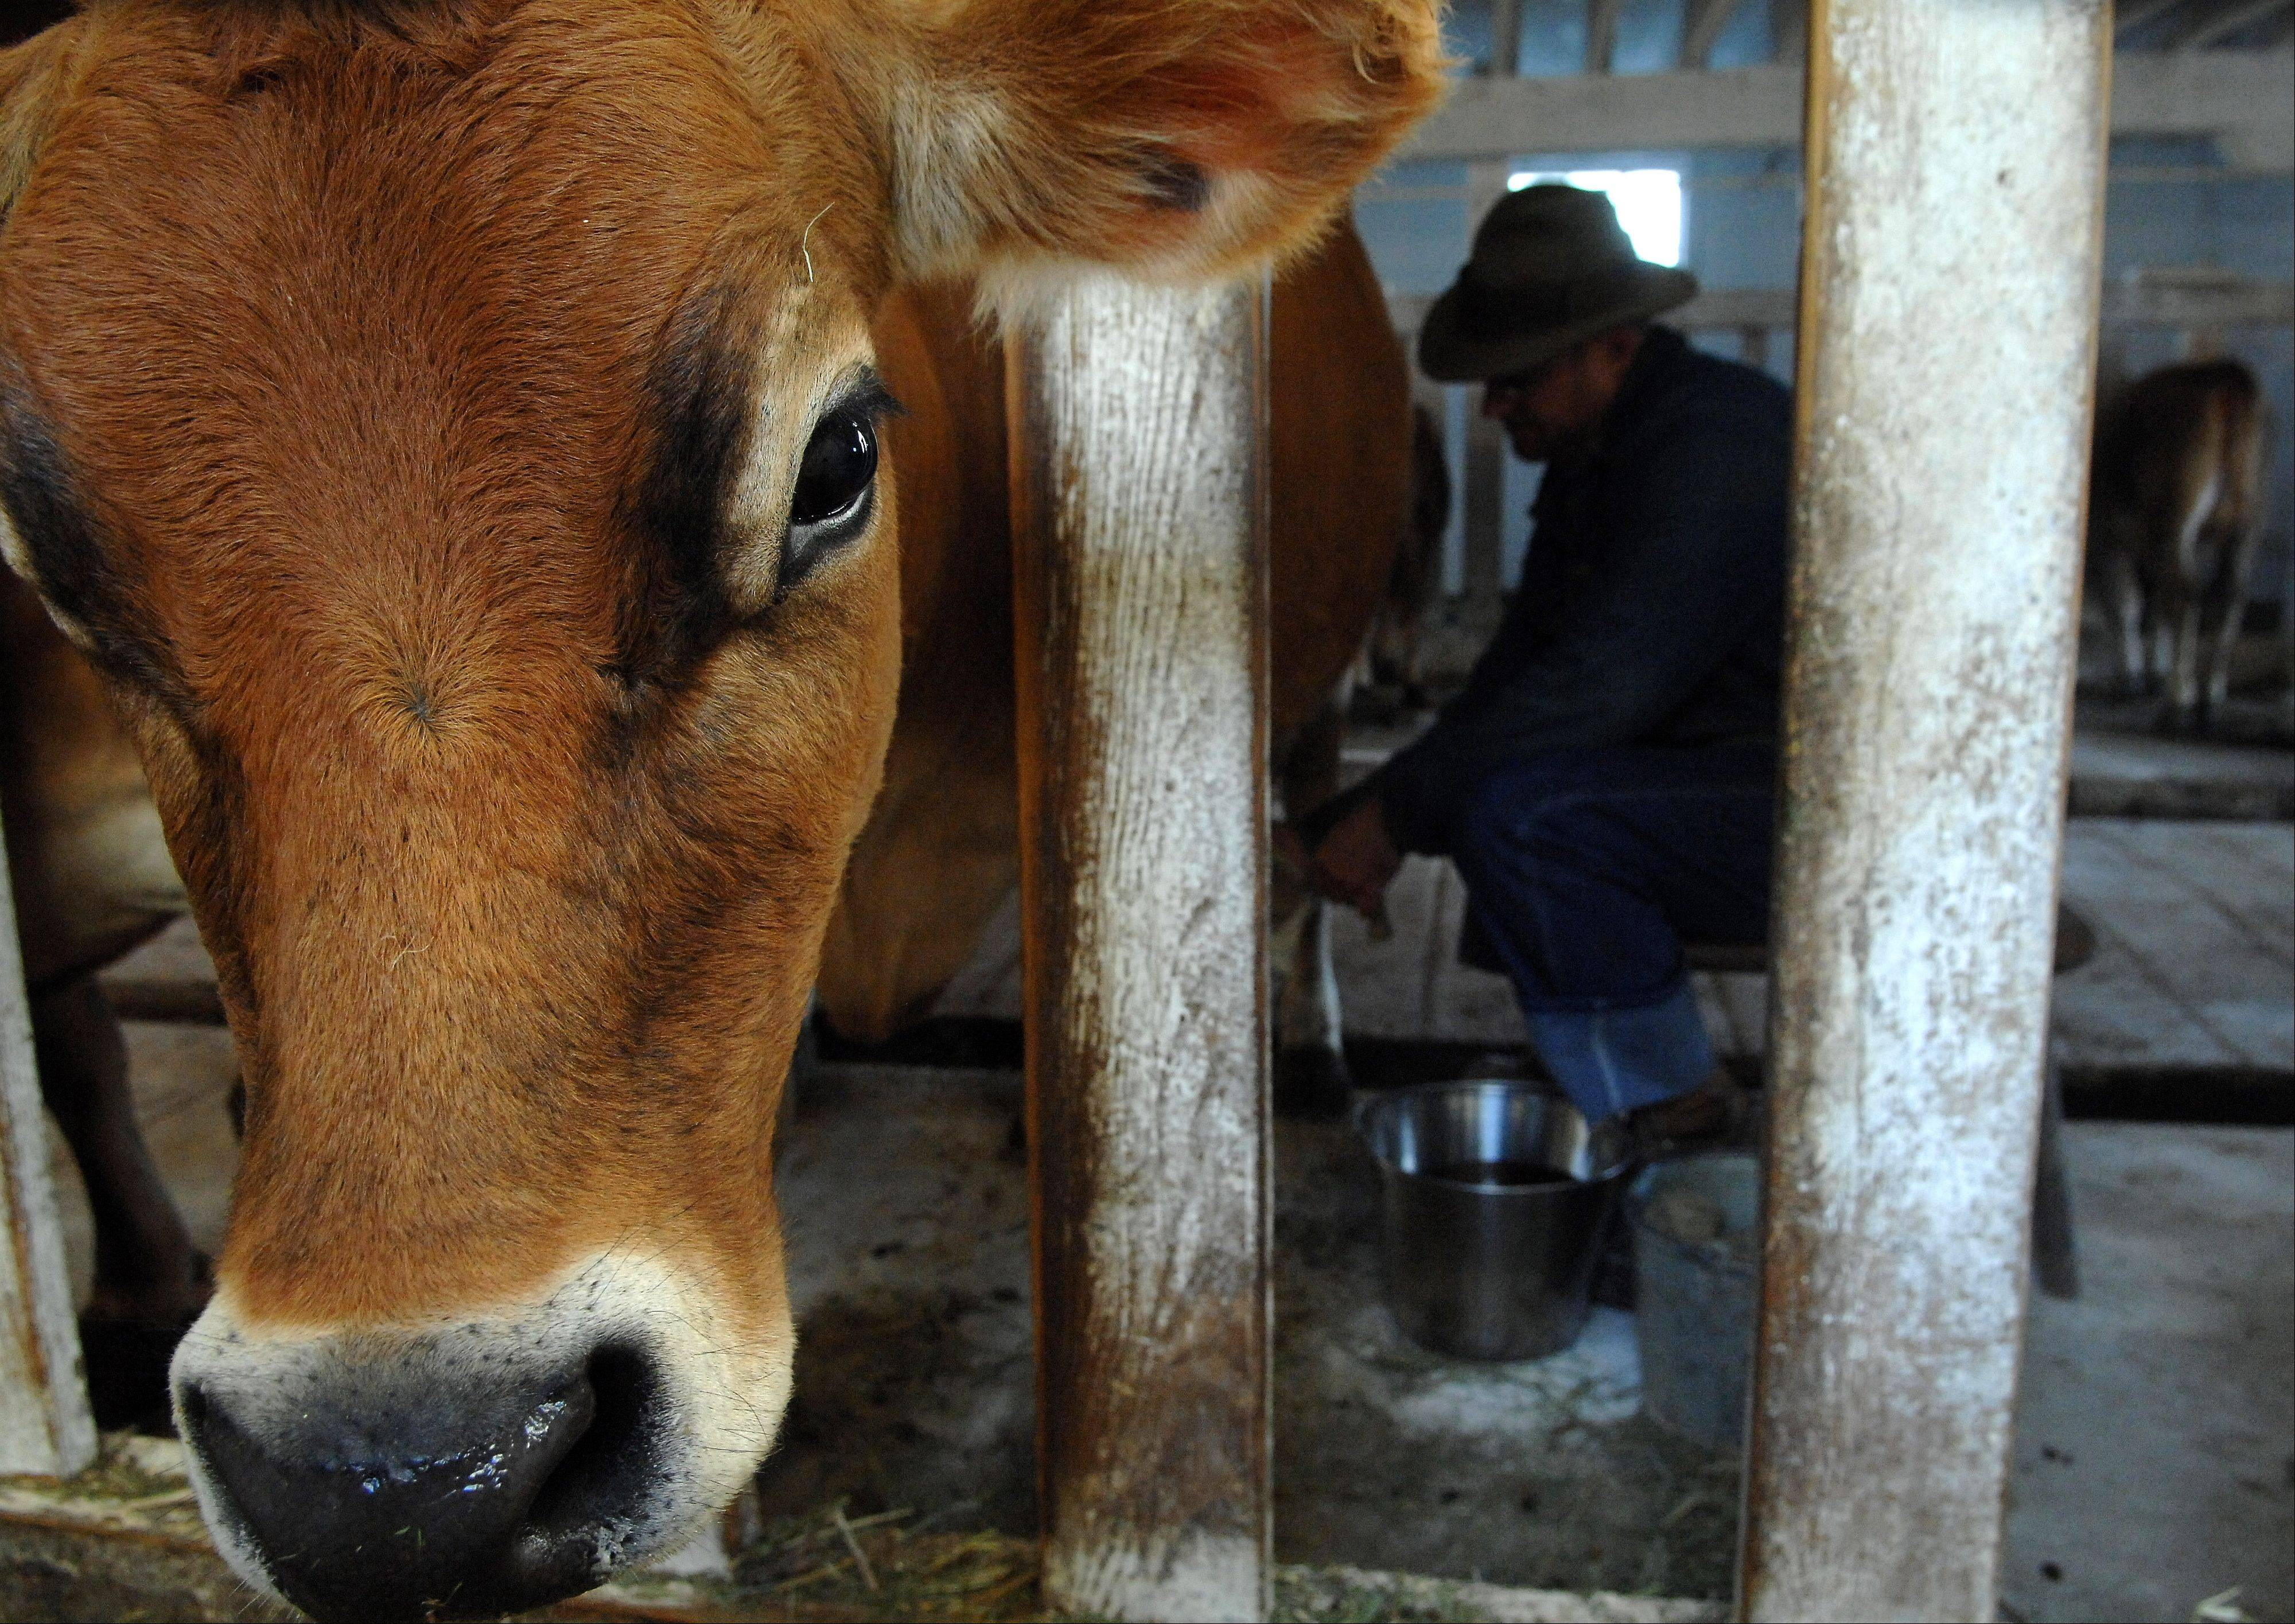 Jon Kuester milks the cows at Primrose Farm in St. Charles. They have three cows producing milk this fall.